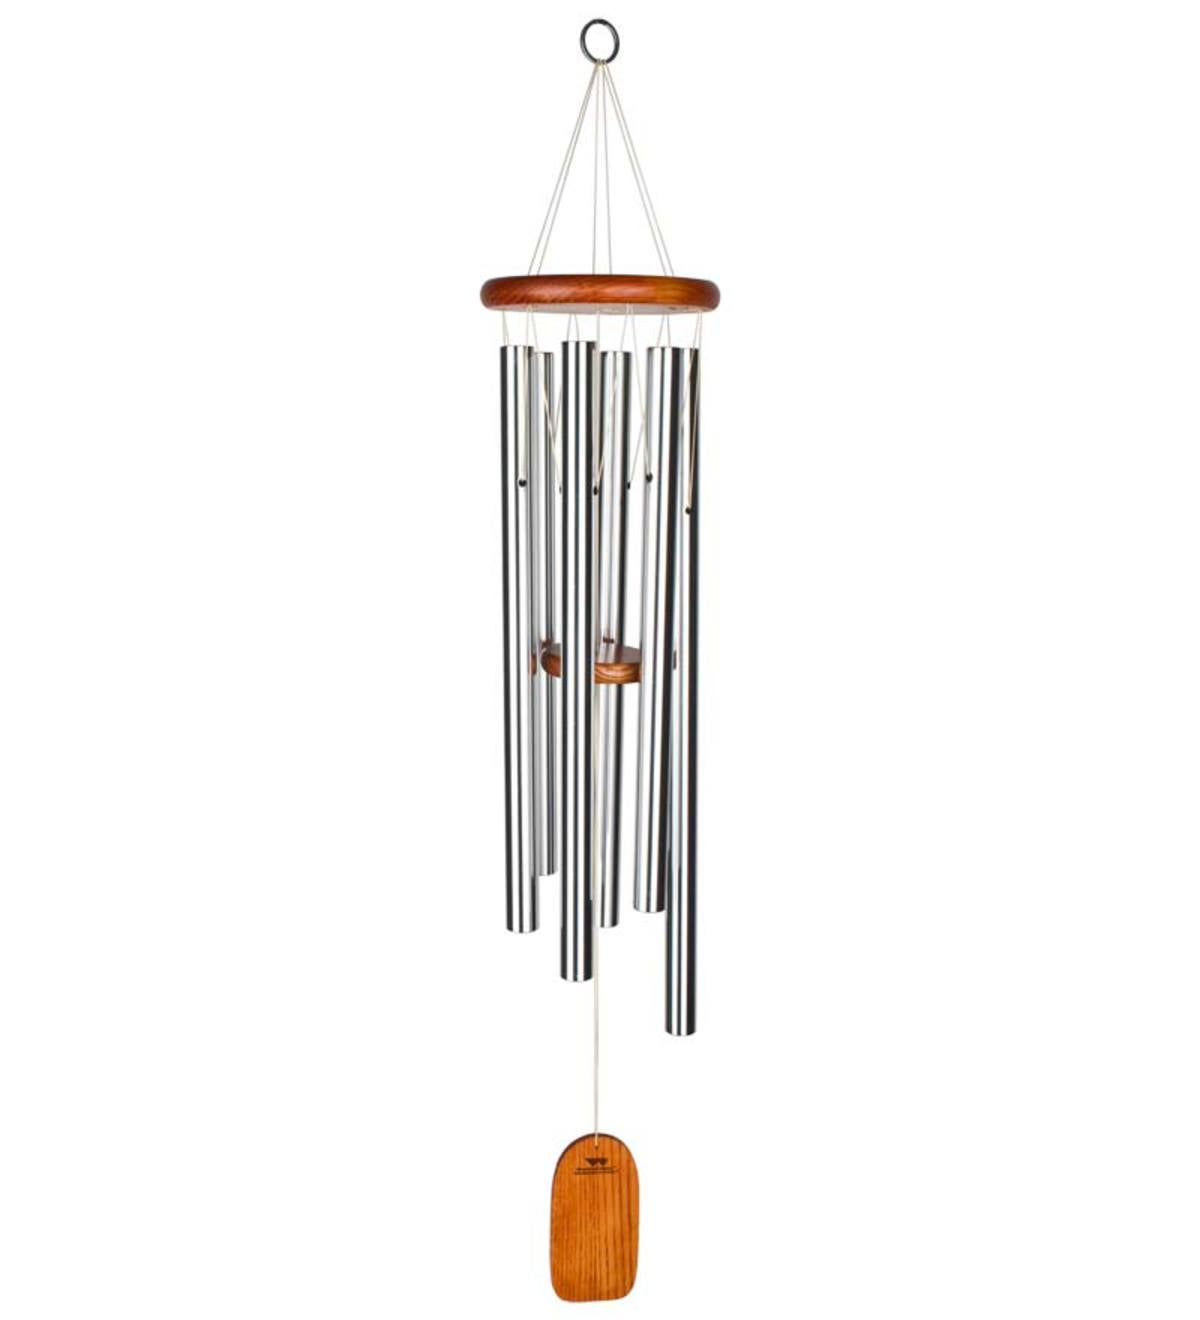 Large Musical Anodized Aluminum And Ash Amazing Grace Wind Chime With Ash Wood Disk And Wind Catcher